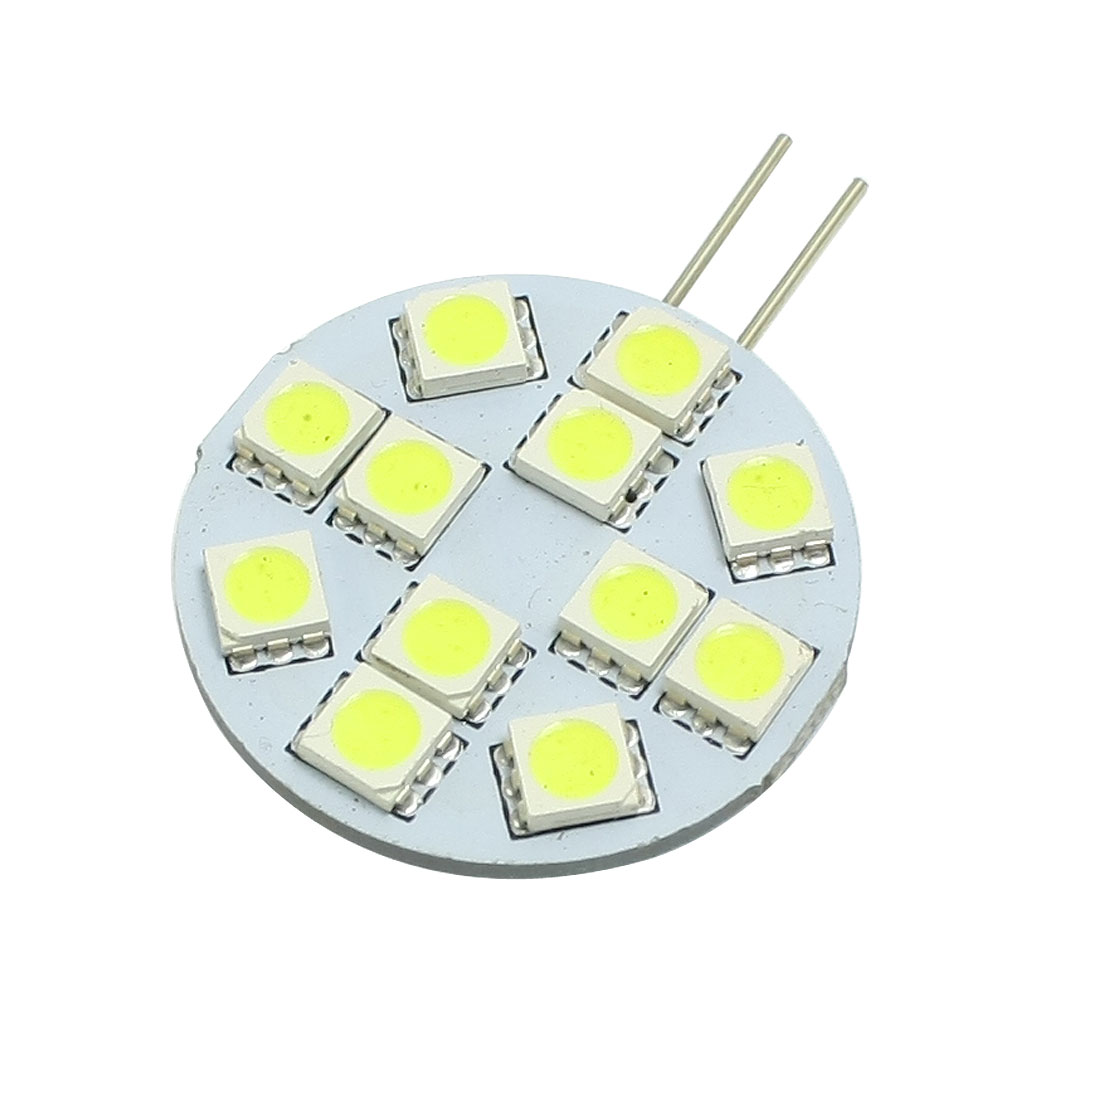 Marine Boat G4 Side Pin White 5050 SMD 12 LED Light Bulb Home Linear Lamp